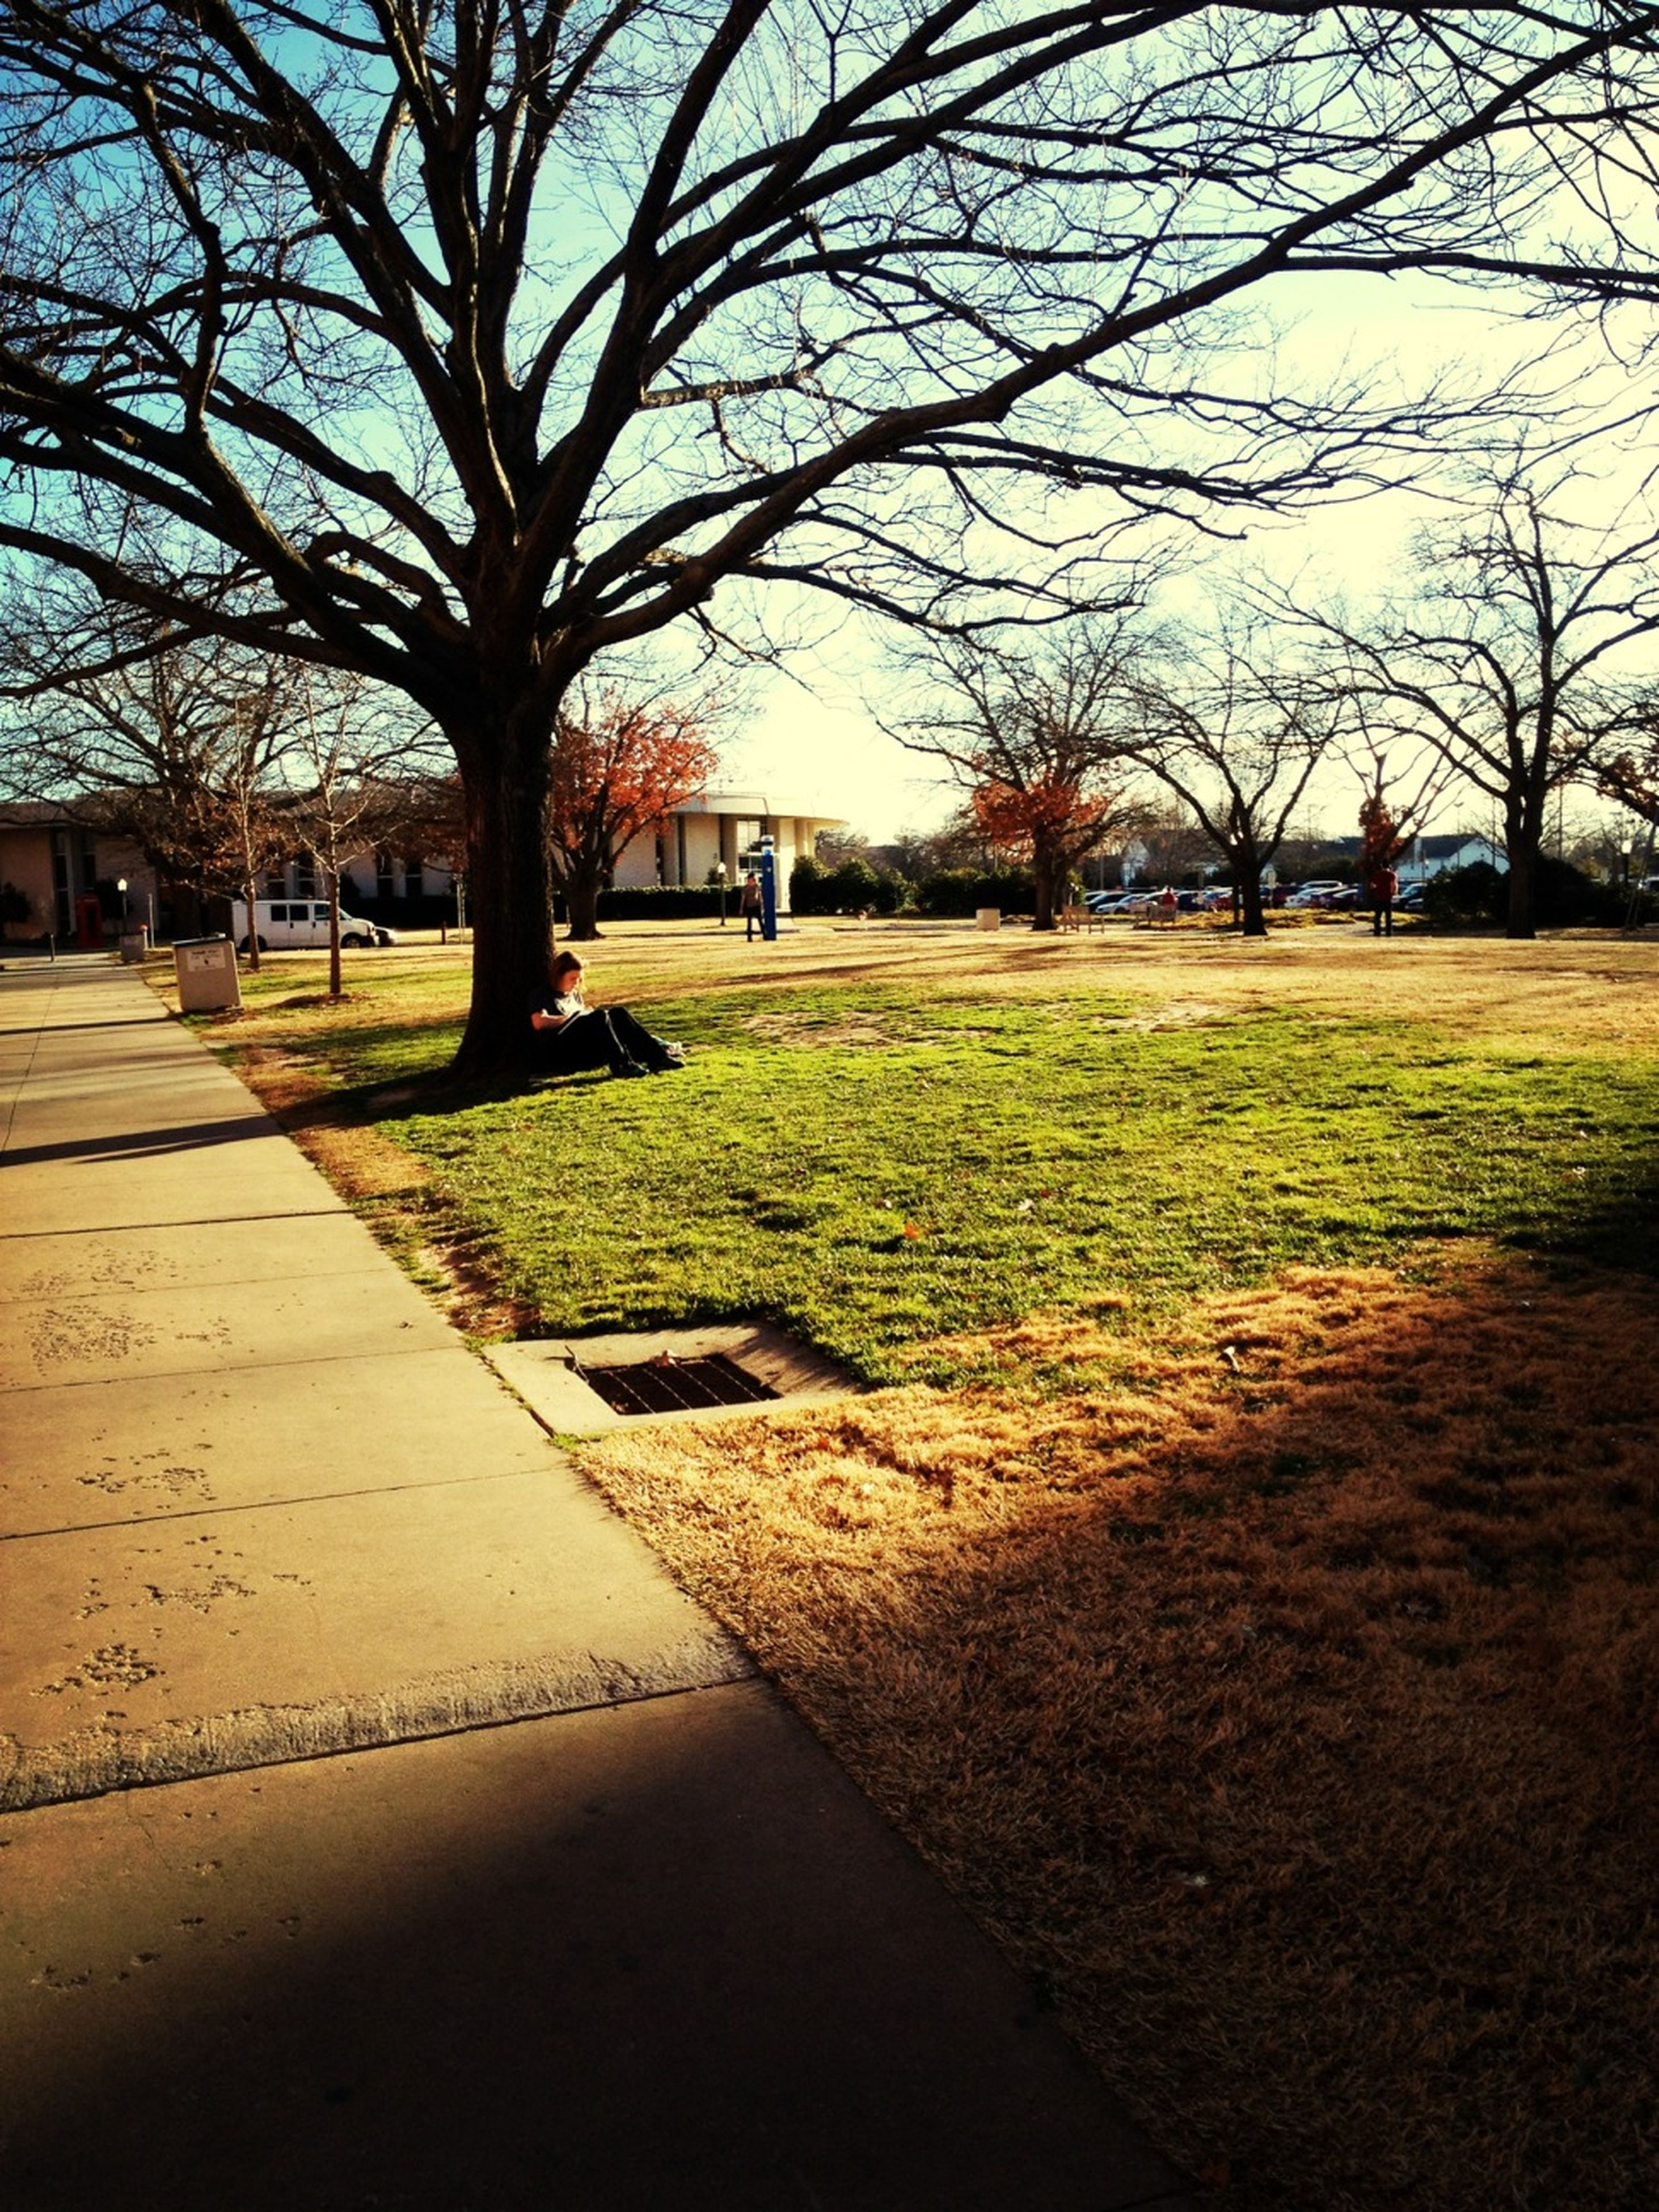 tree, bare tree, grass, park - man made space, building exterior, shadow, footpath, branch, park, lawn, built structure, architecture, sky, incidental people, street, sunlight, walkway, road, day, city